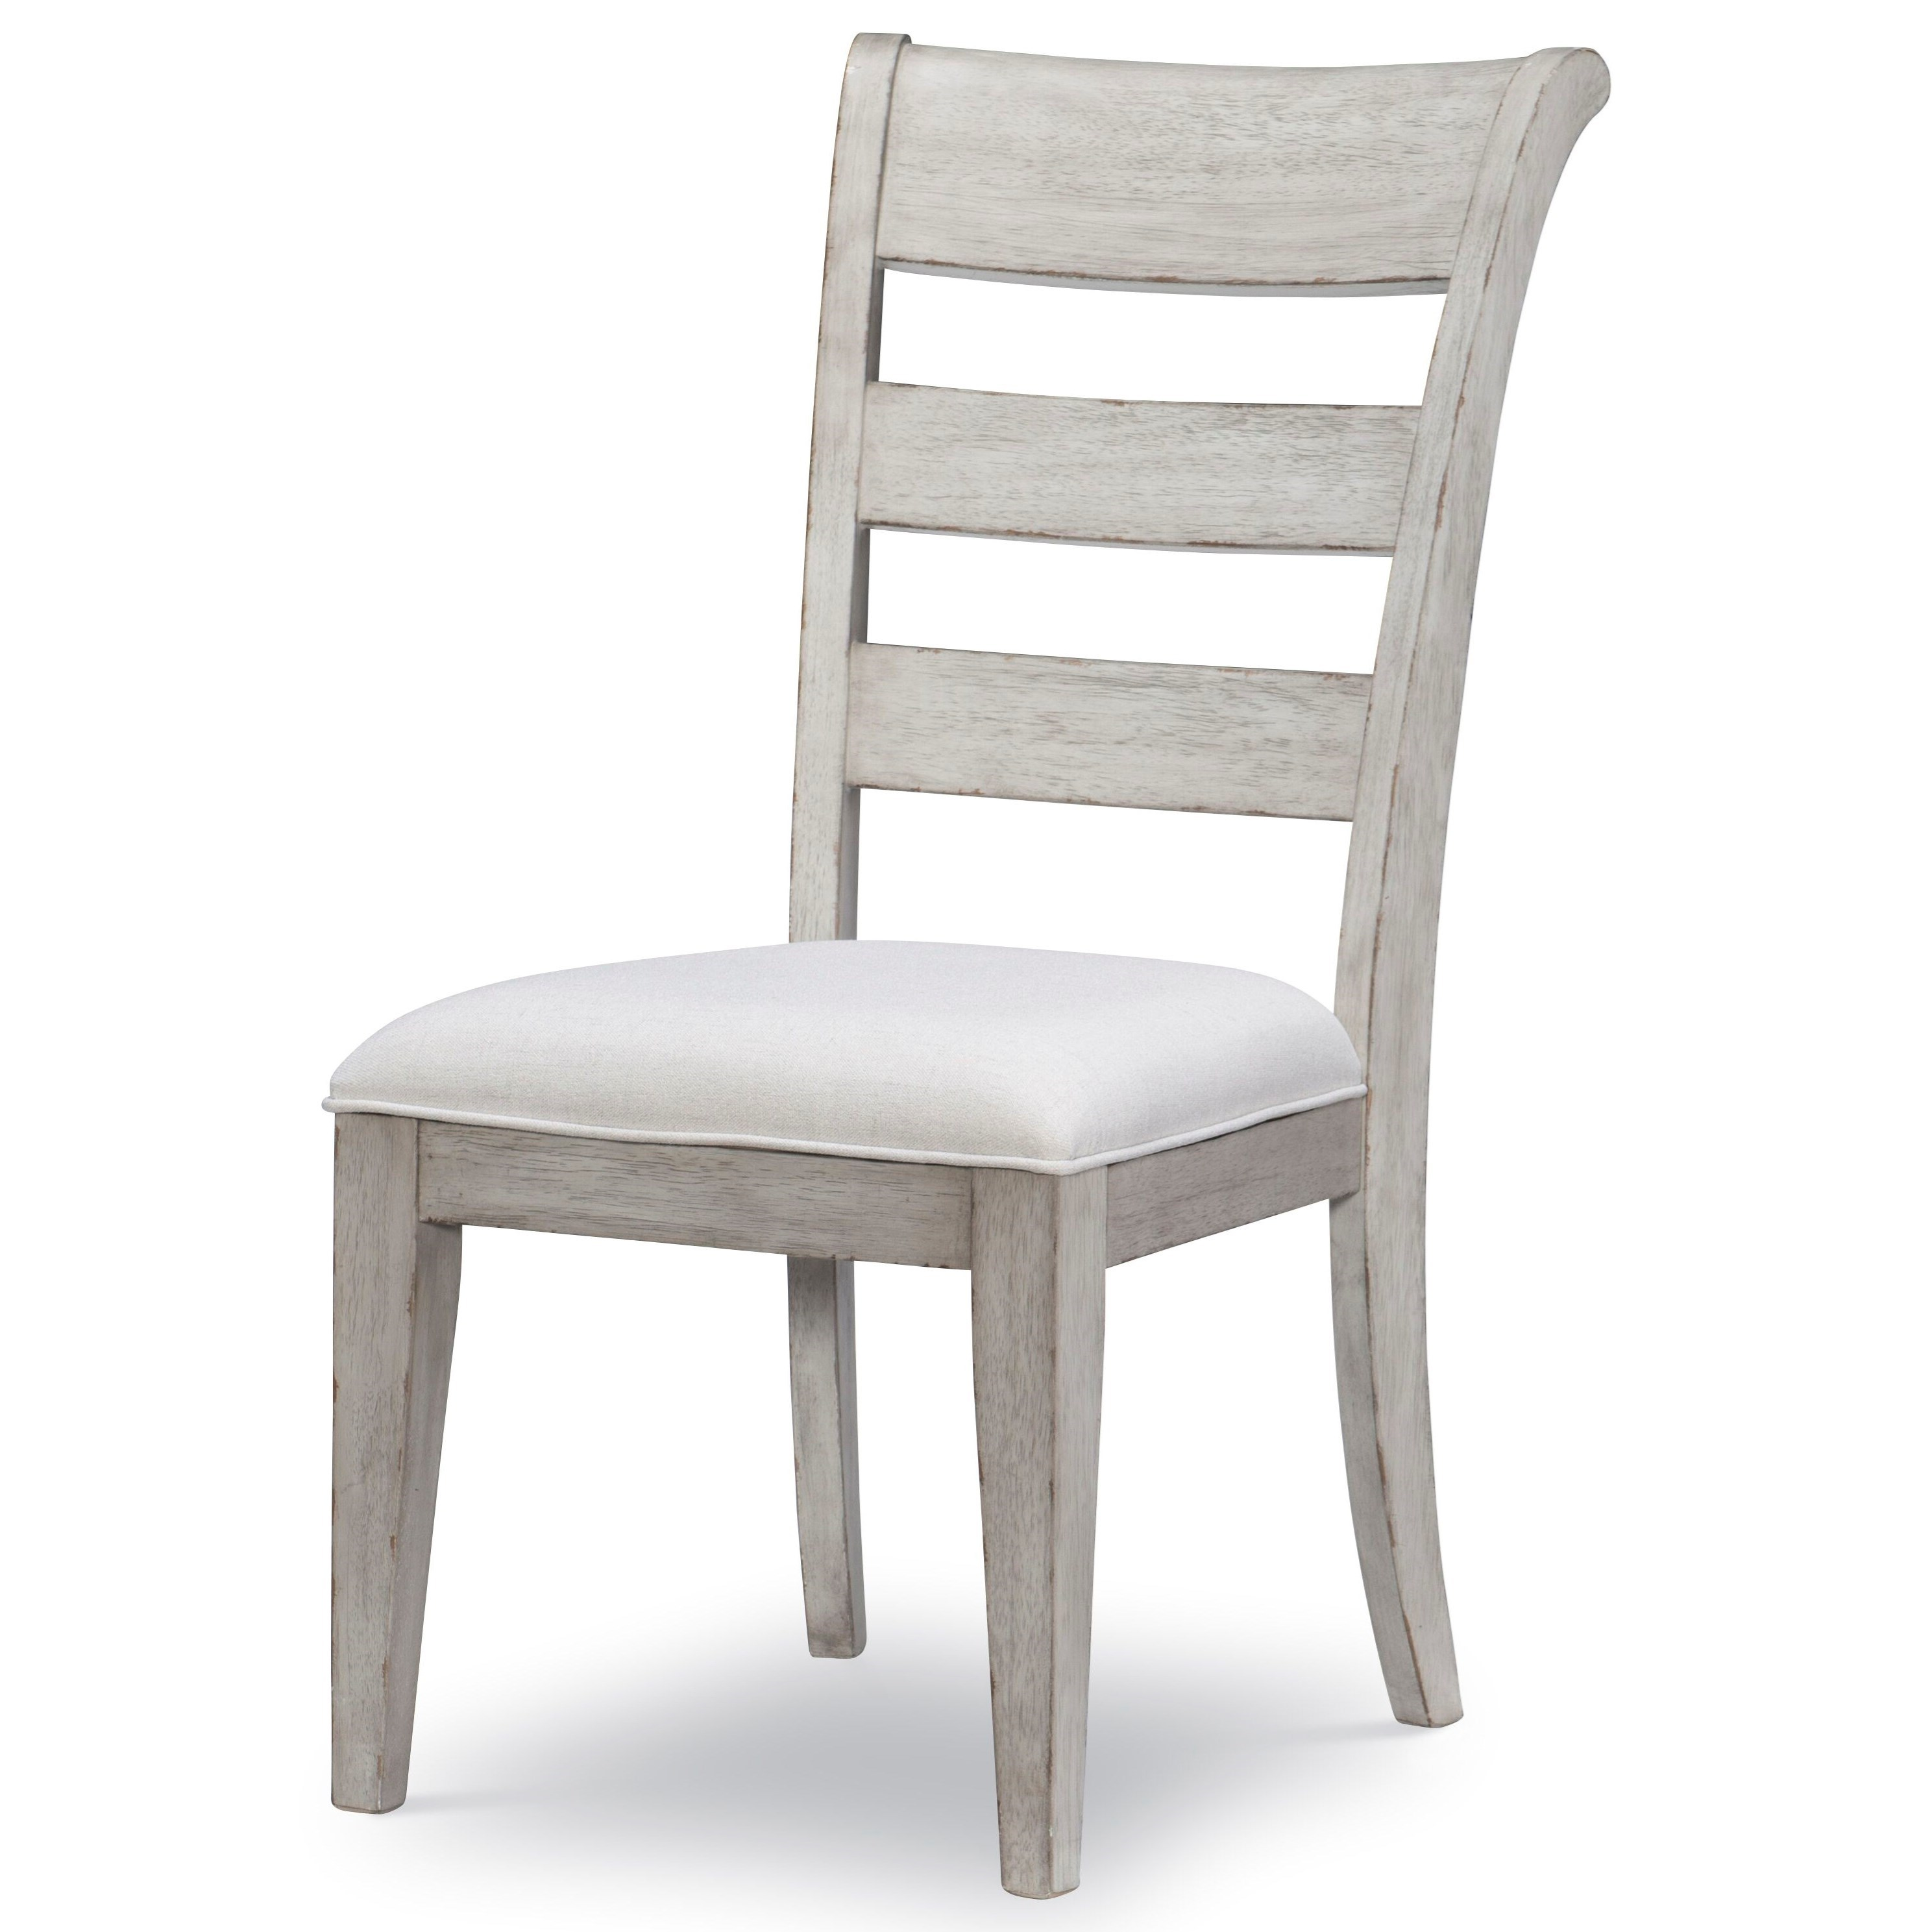 Belhaven Ladder Back Side Chair by Legacy Classic at EFO Furniture Outlet